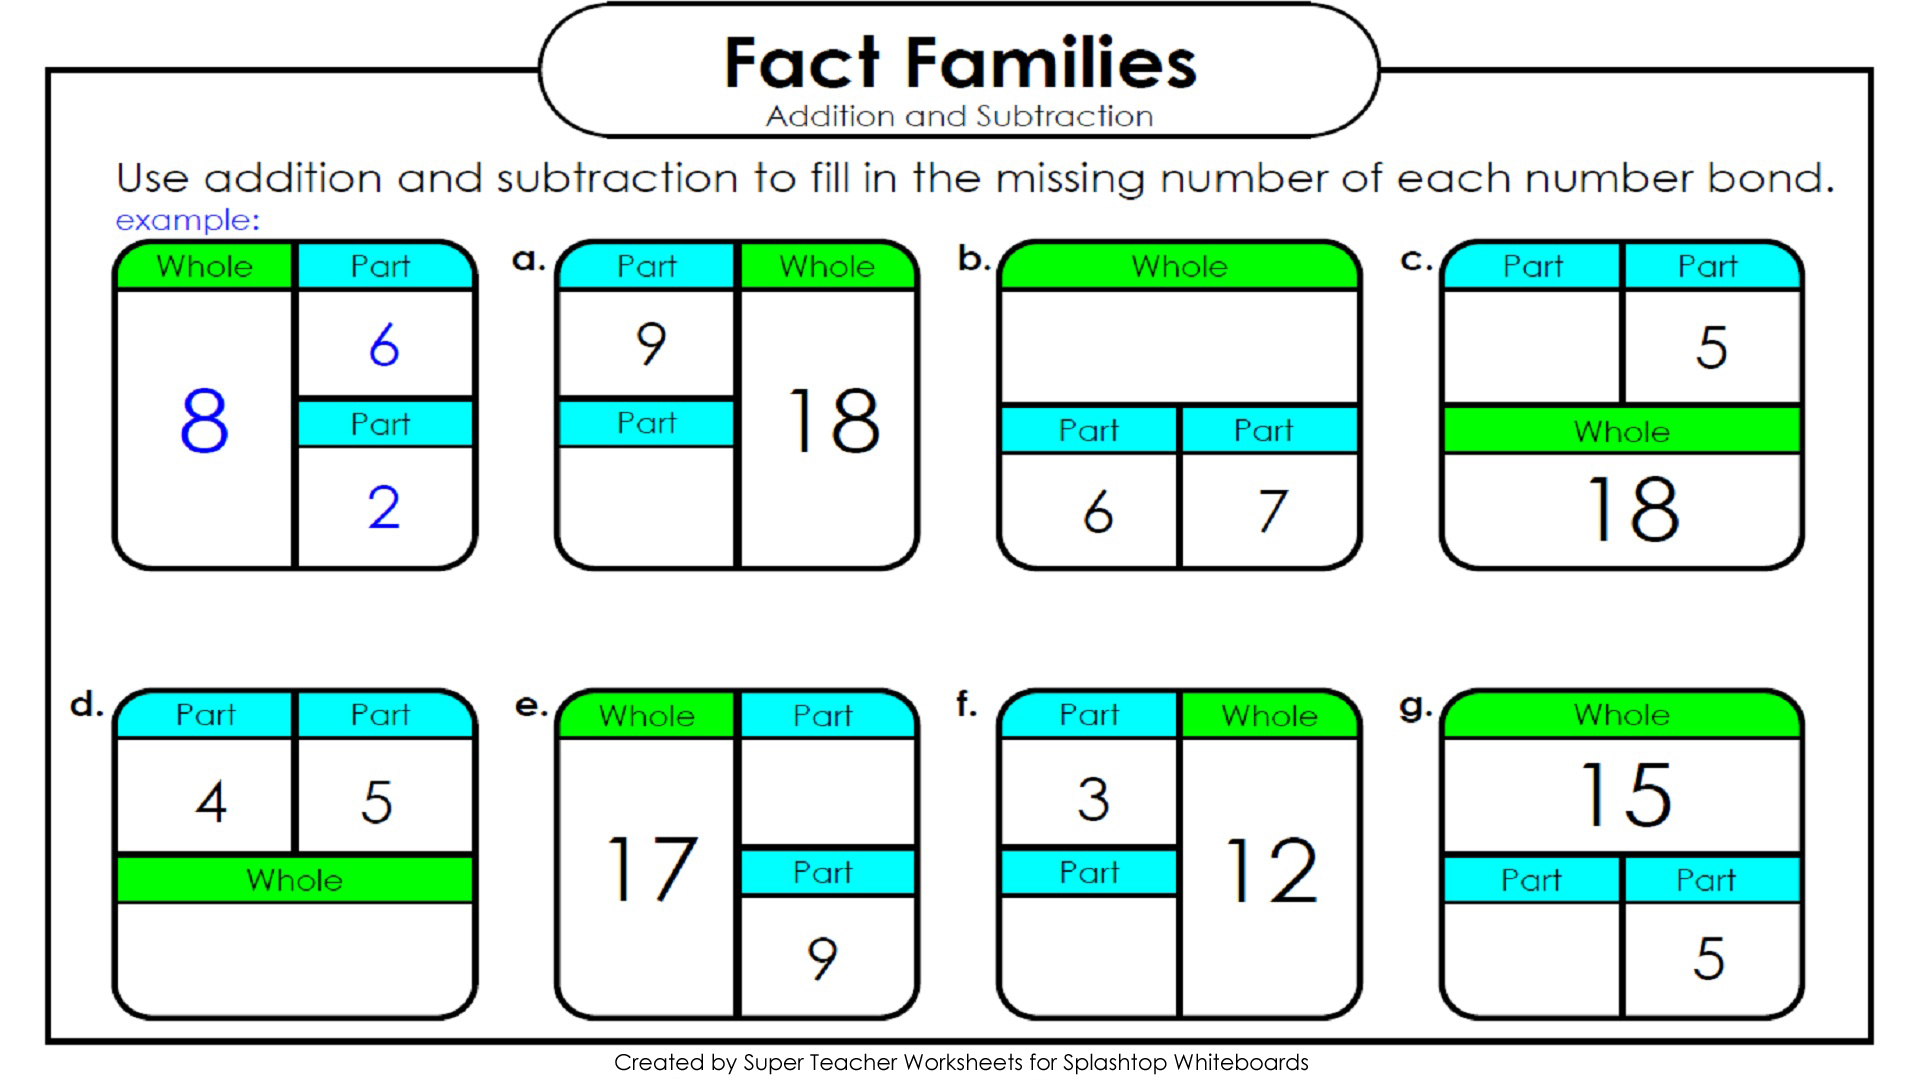 Fact Family Worksheets 3Rd Grade – Fact Families Addition and Subtraction Worksheets